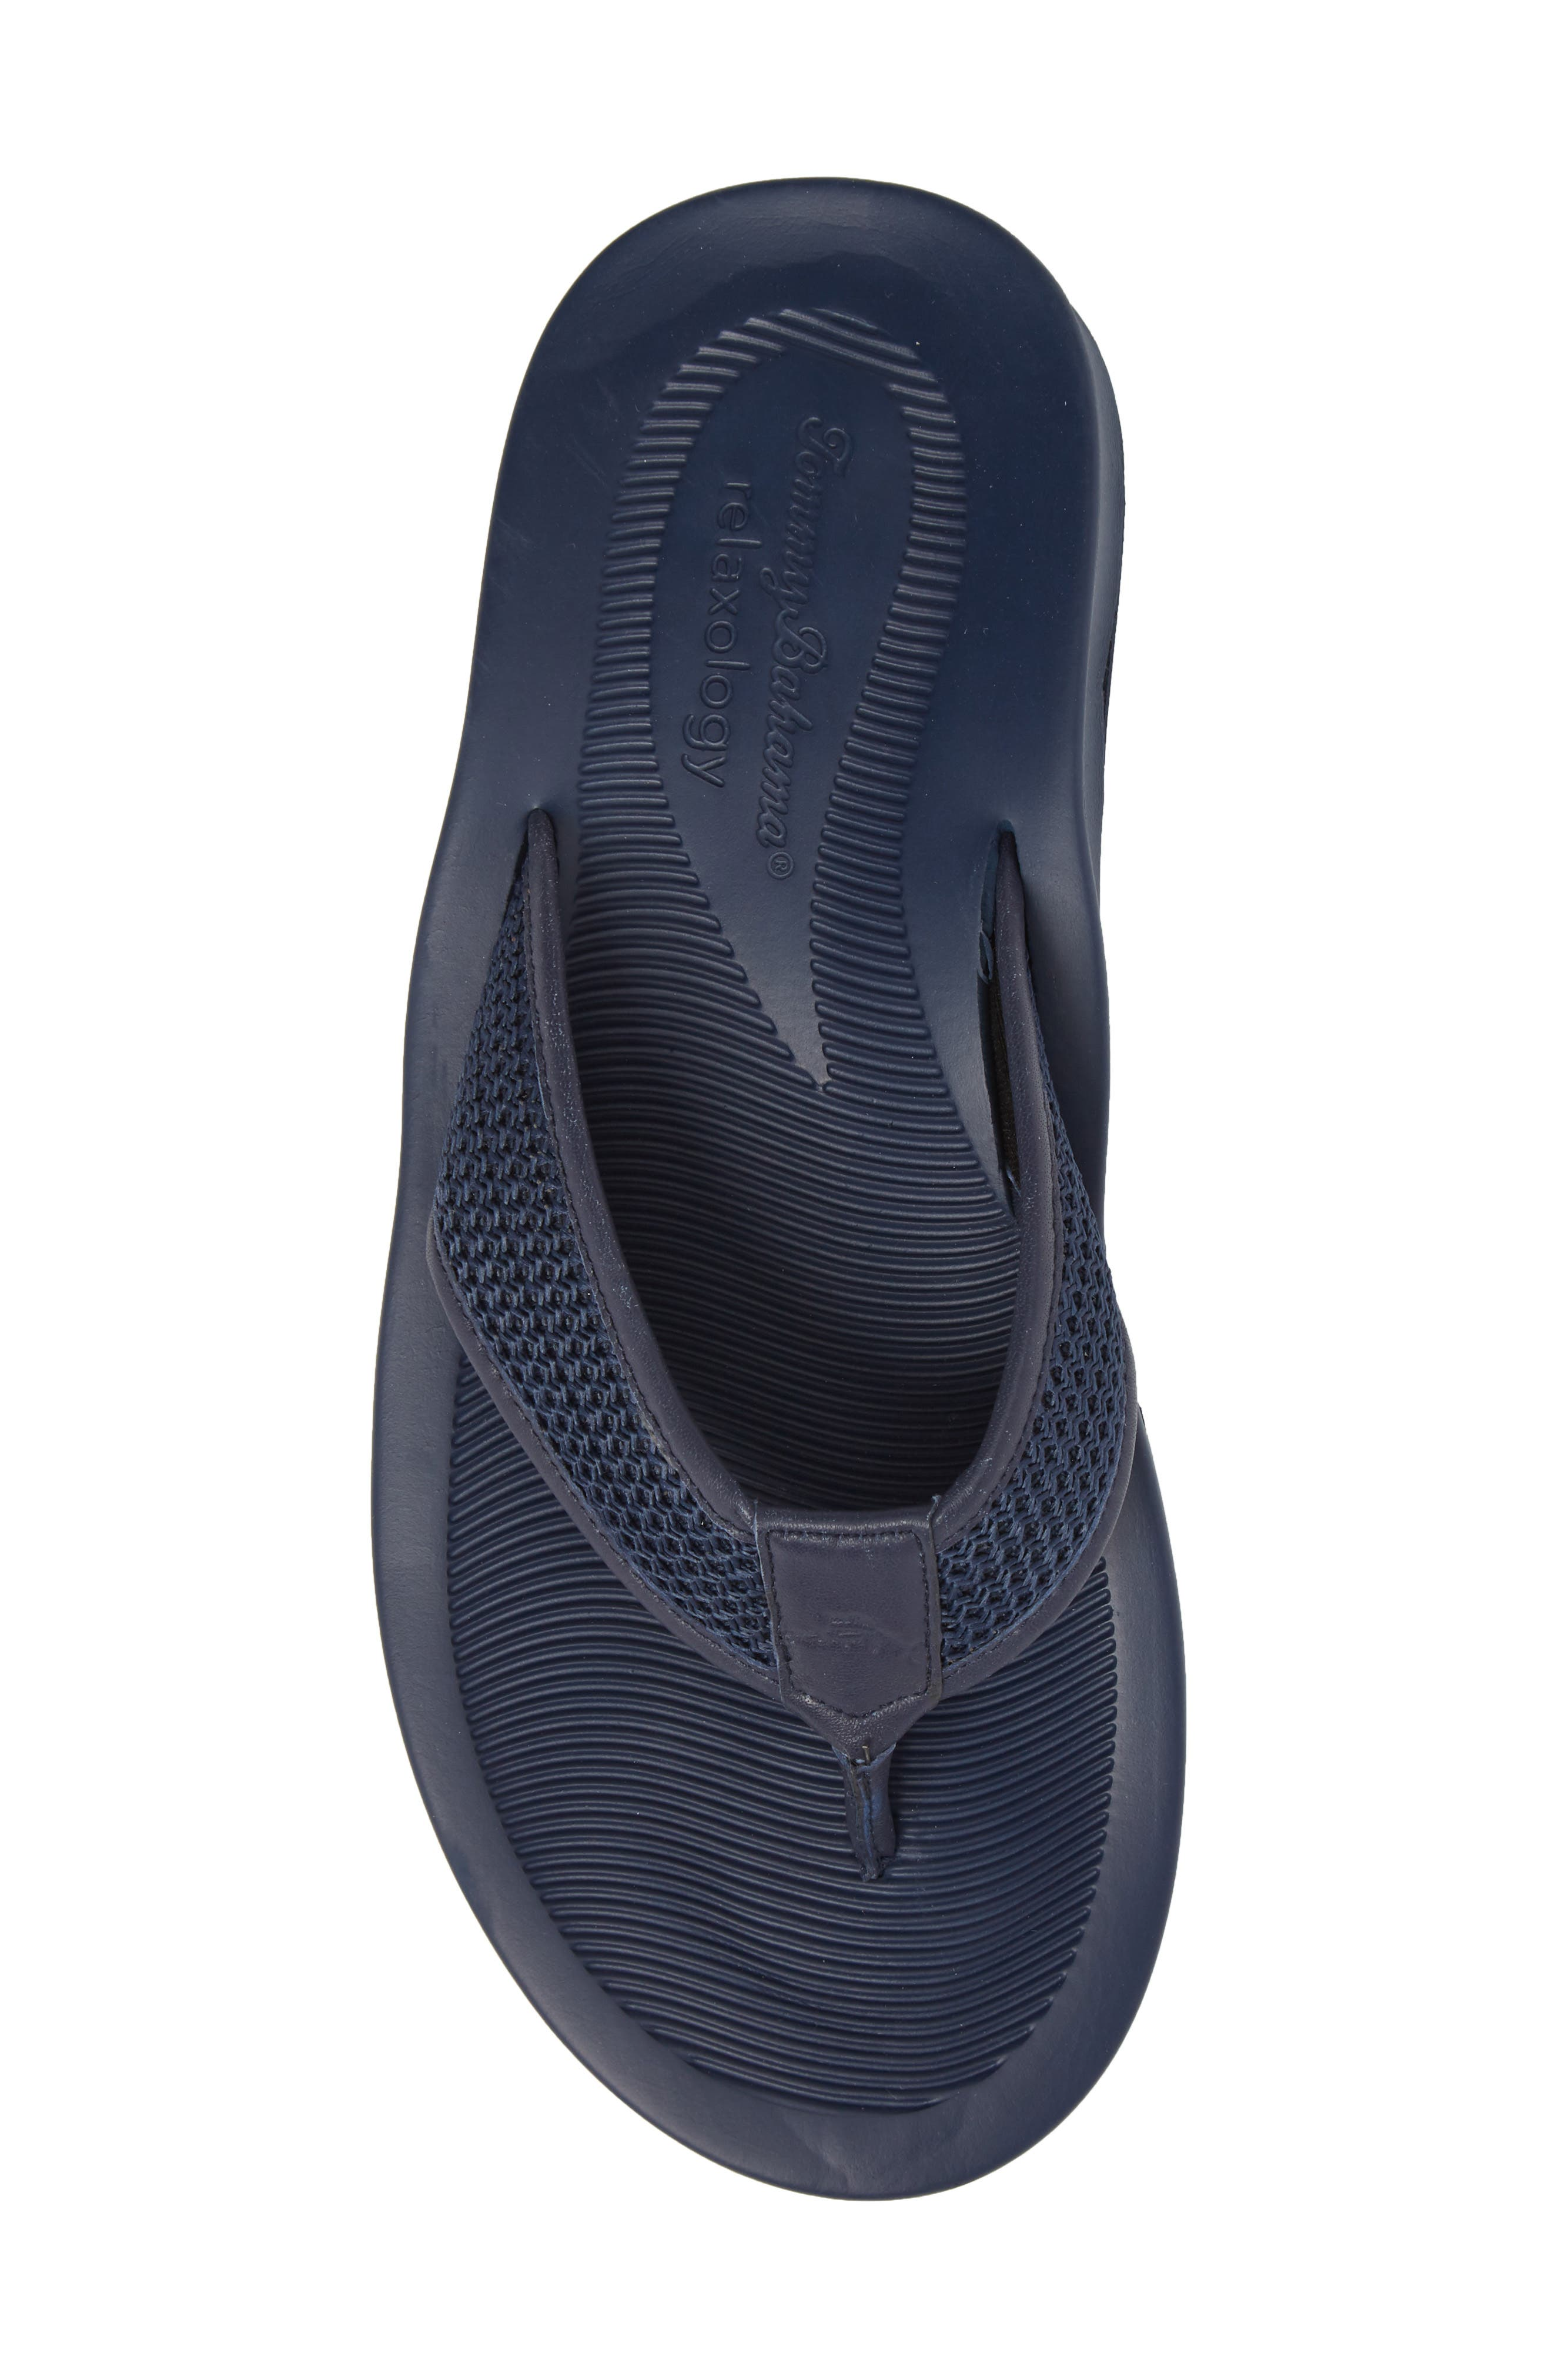 Shallows Edge Mesh Flip Flop,                             Alternate thumbnail 5, color,                             Navy Mesh/ Leather